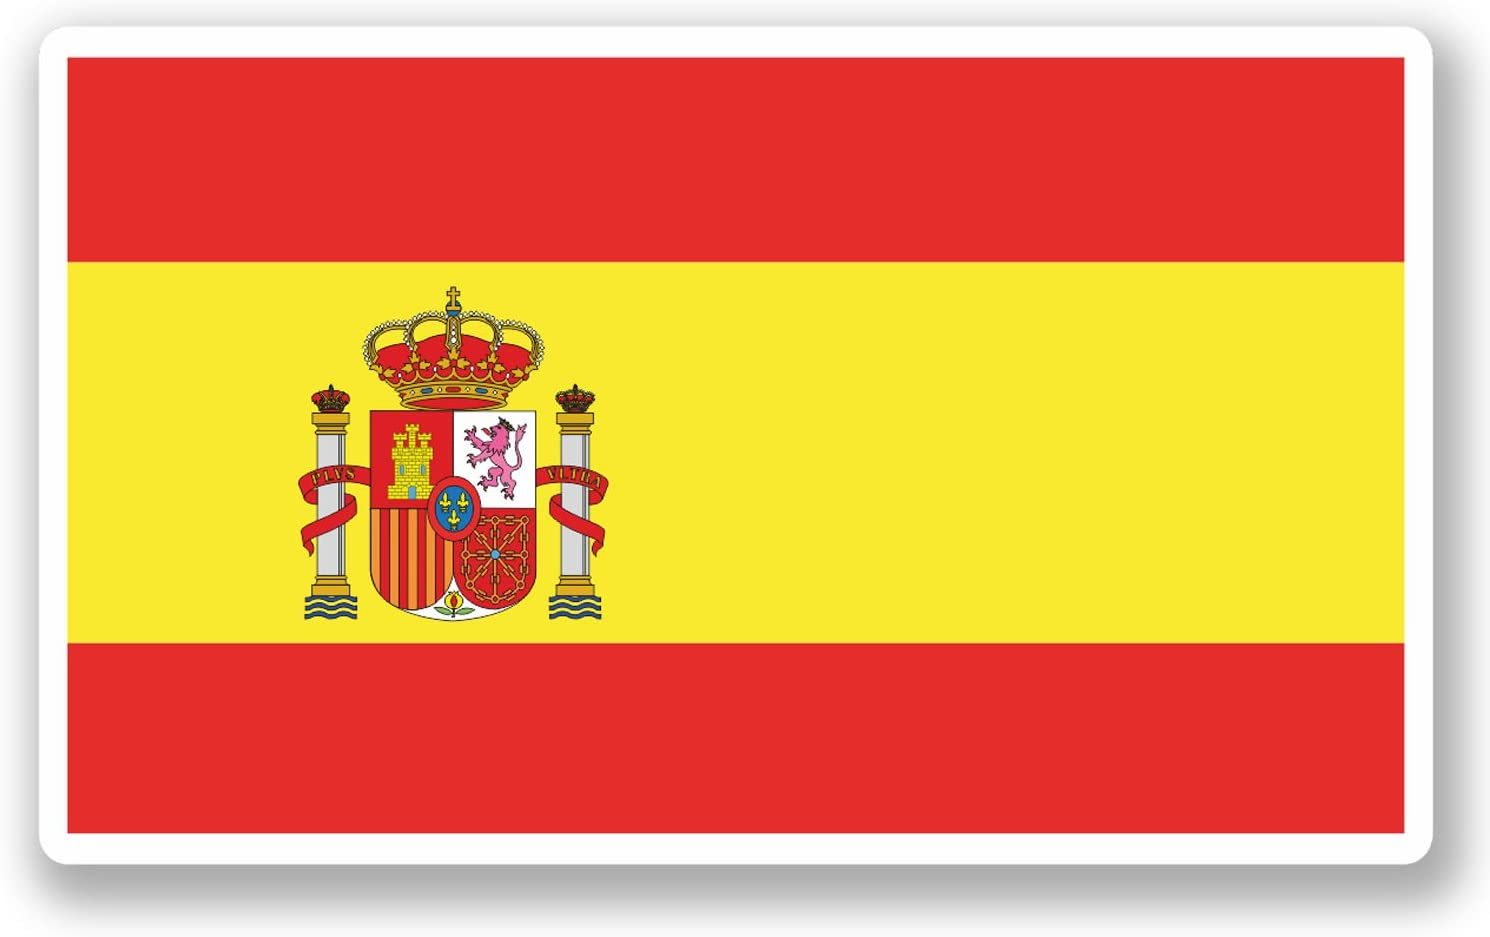 2 x 10cm Spain Spanish Flag Vinyl Sticker iPad Laptop Car Travel Luggage #5271: Amazon.es: Coche y moto